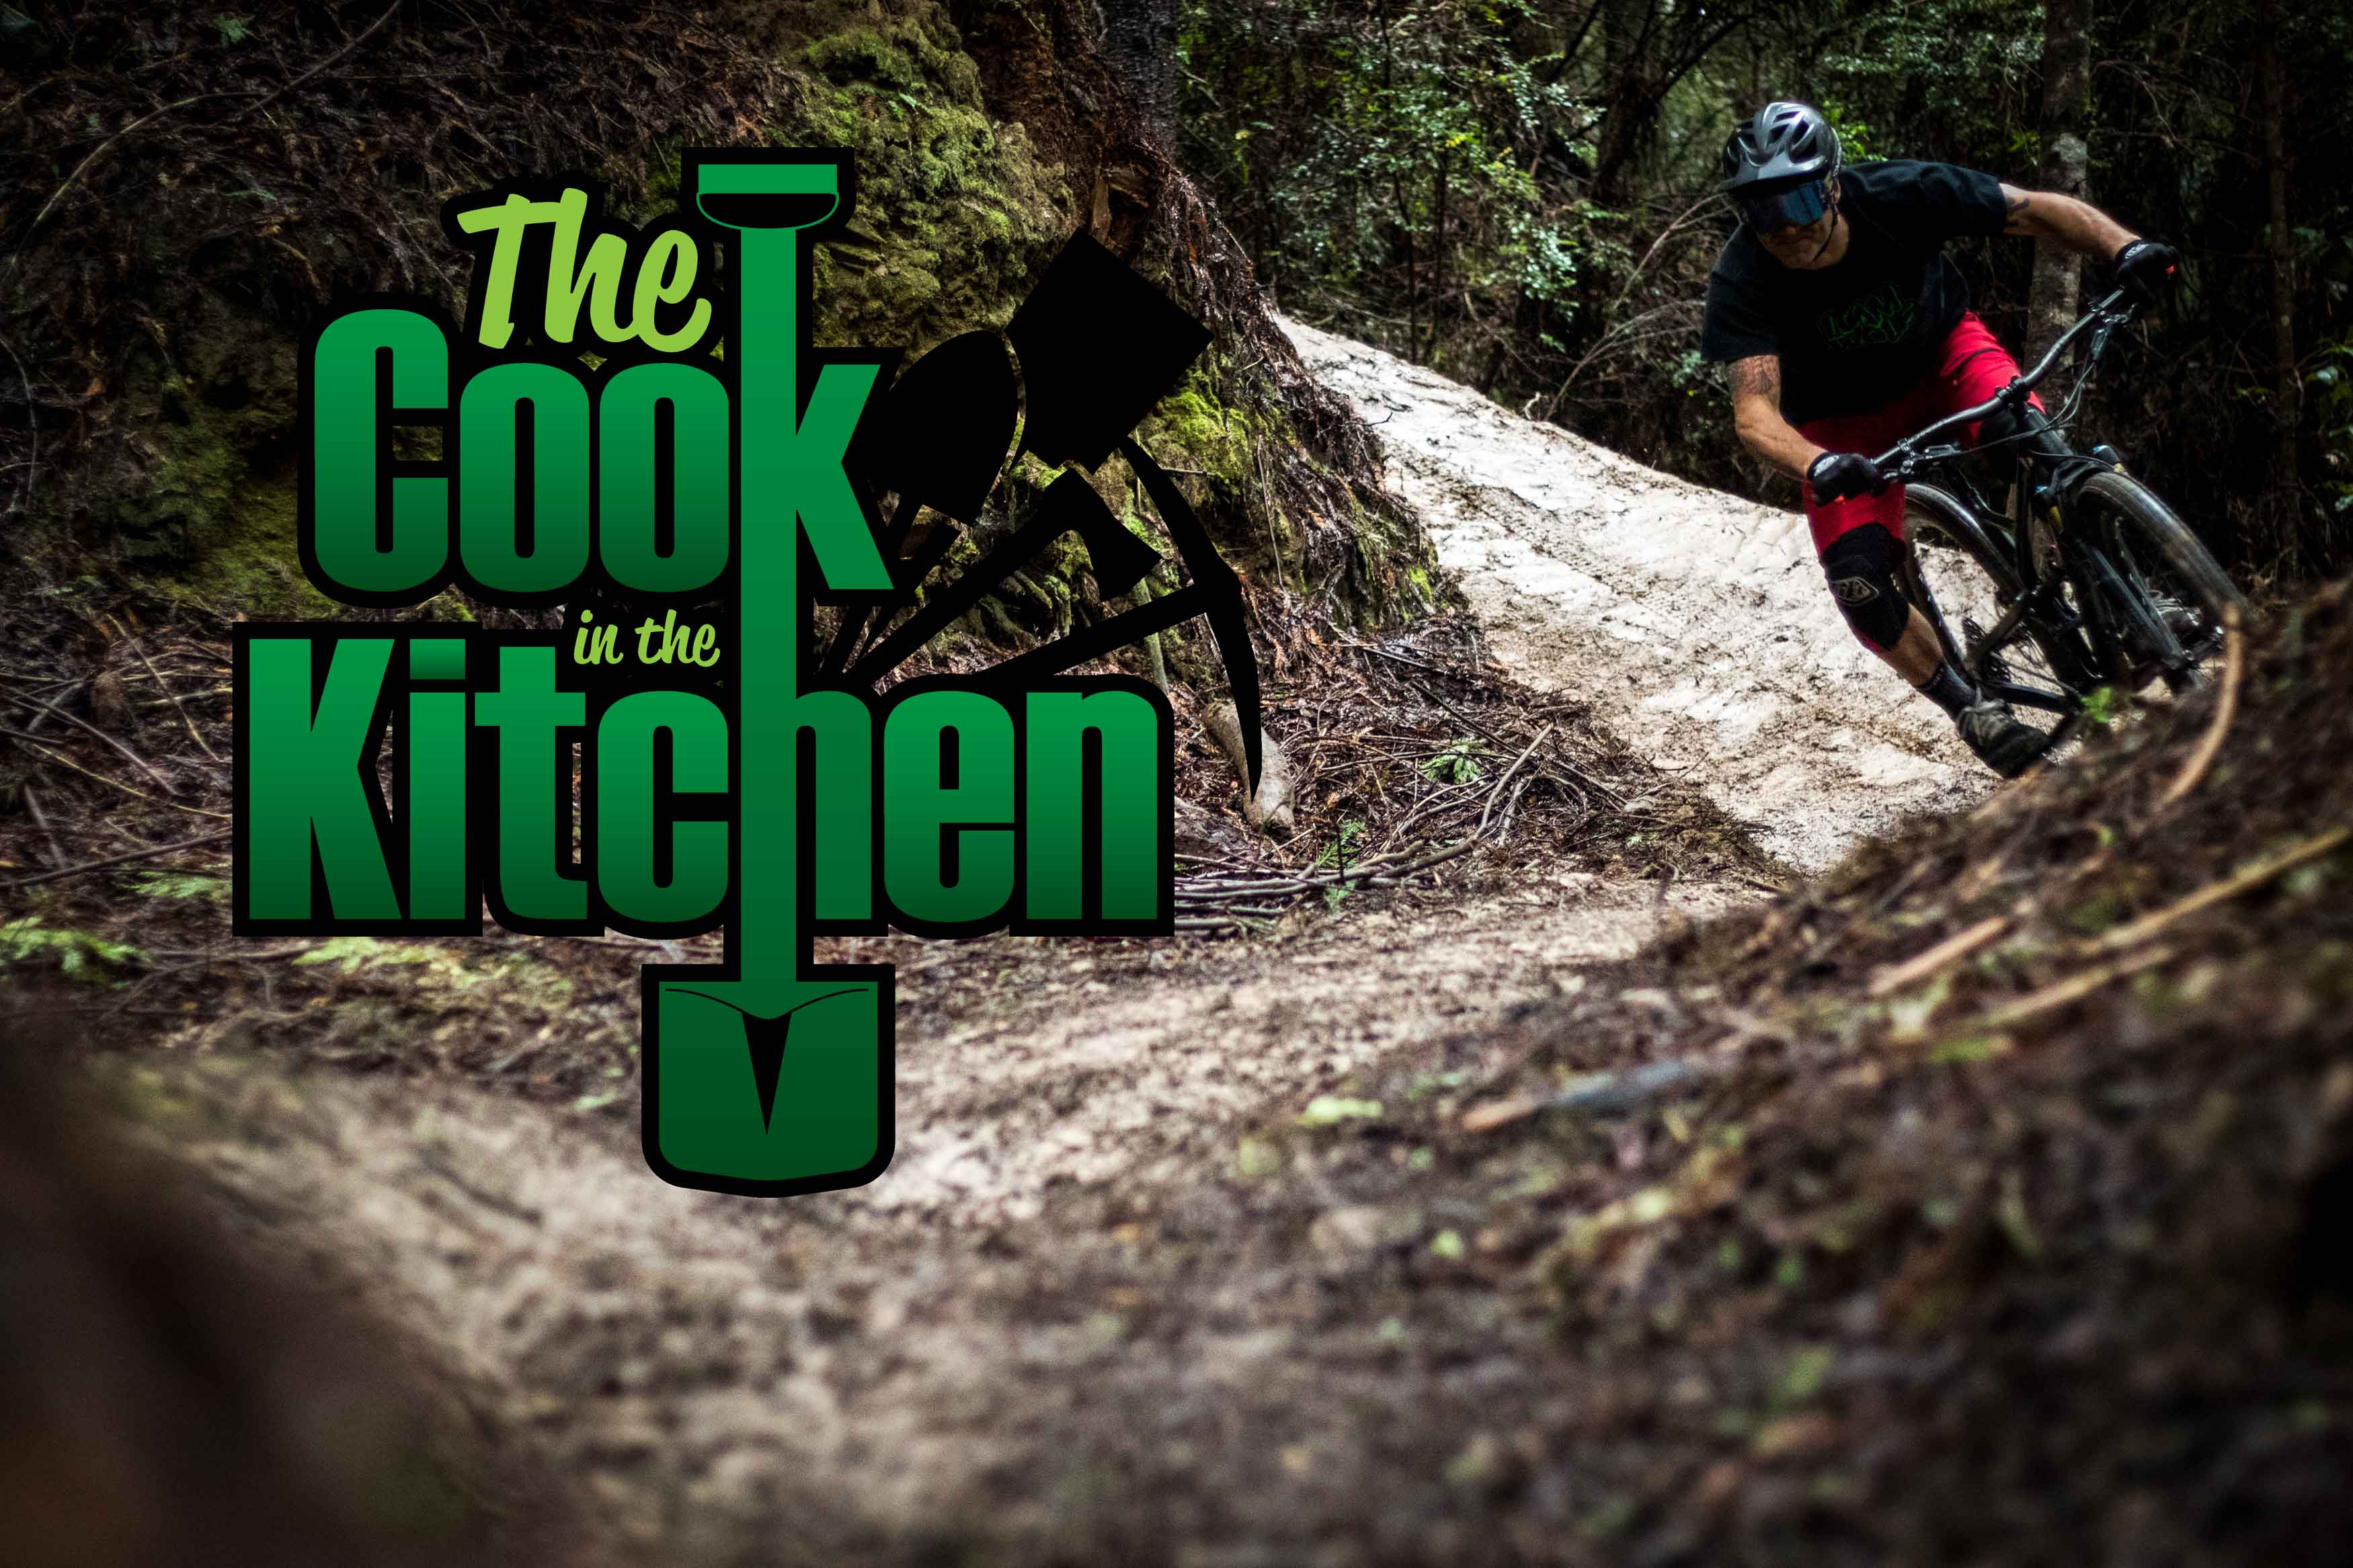 Feature: Tbe Cook in the Kitchen